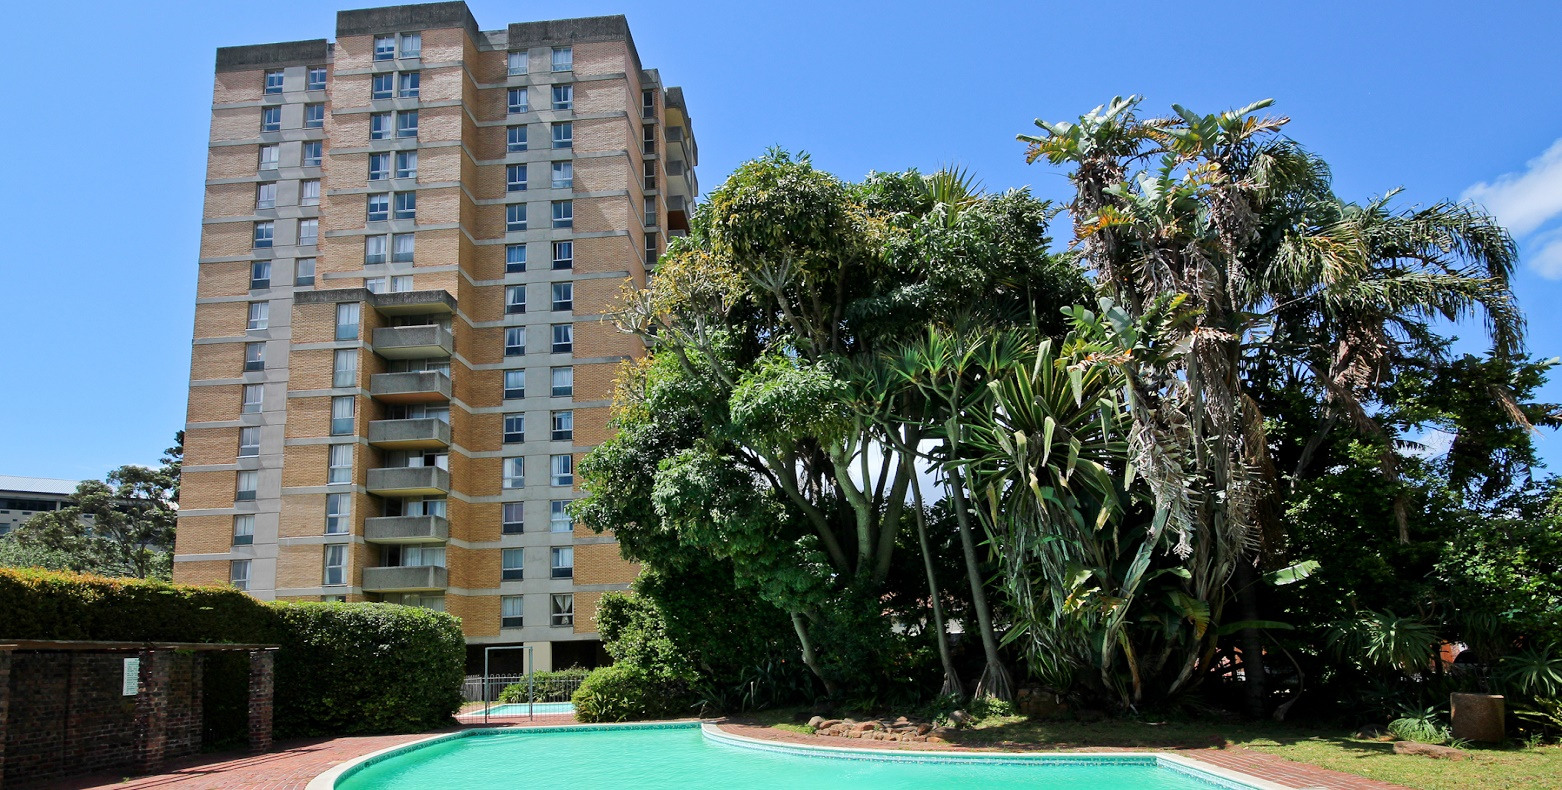 Sold Apartments in Newlands